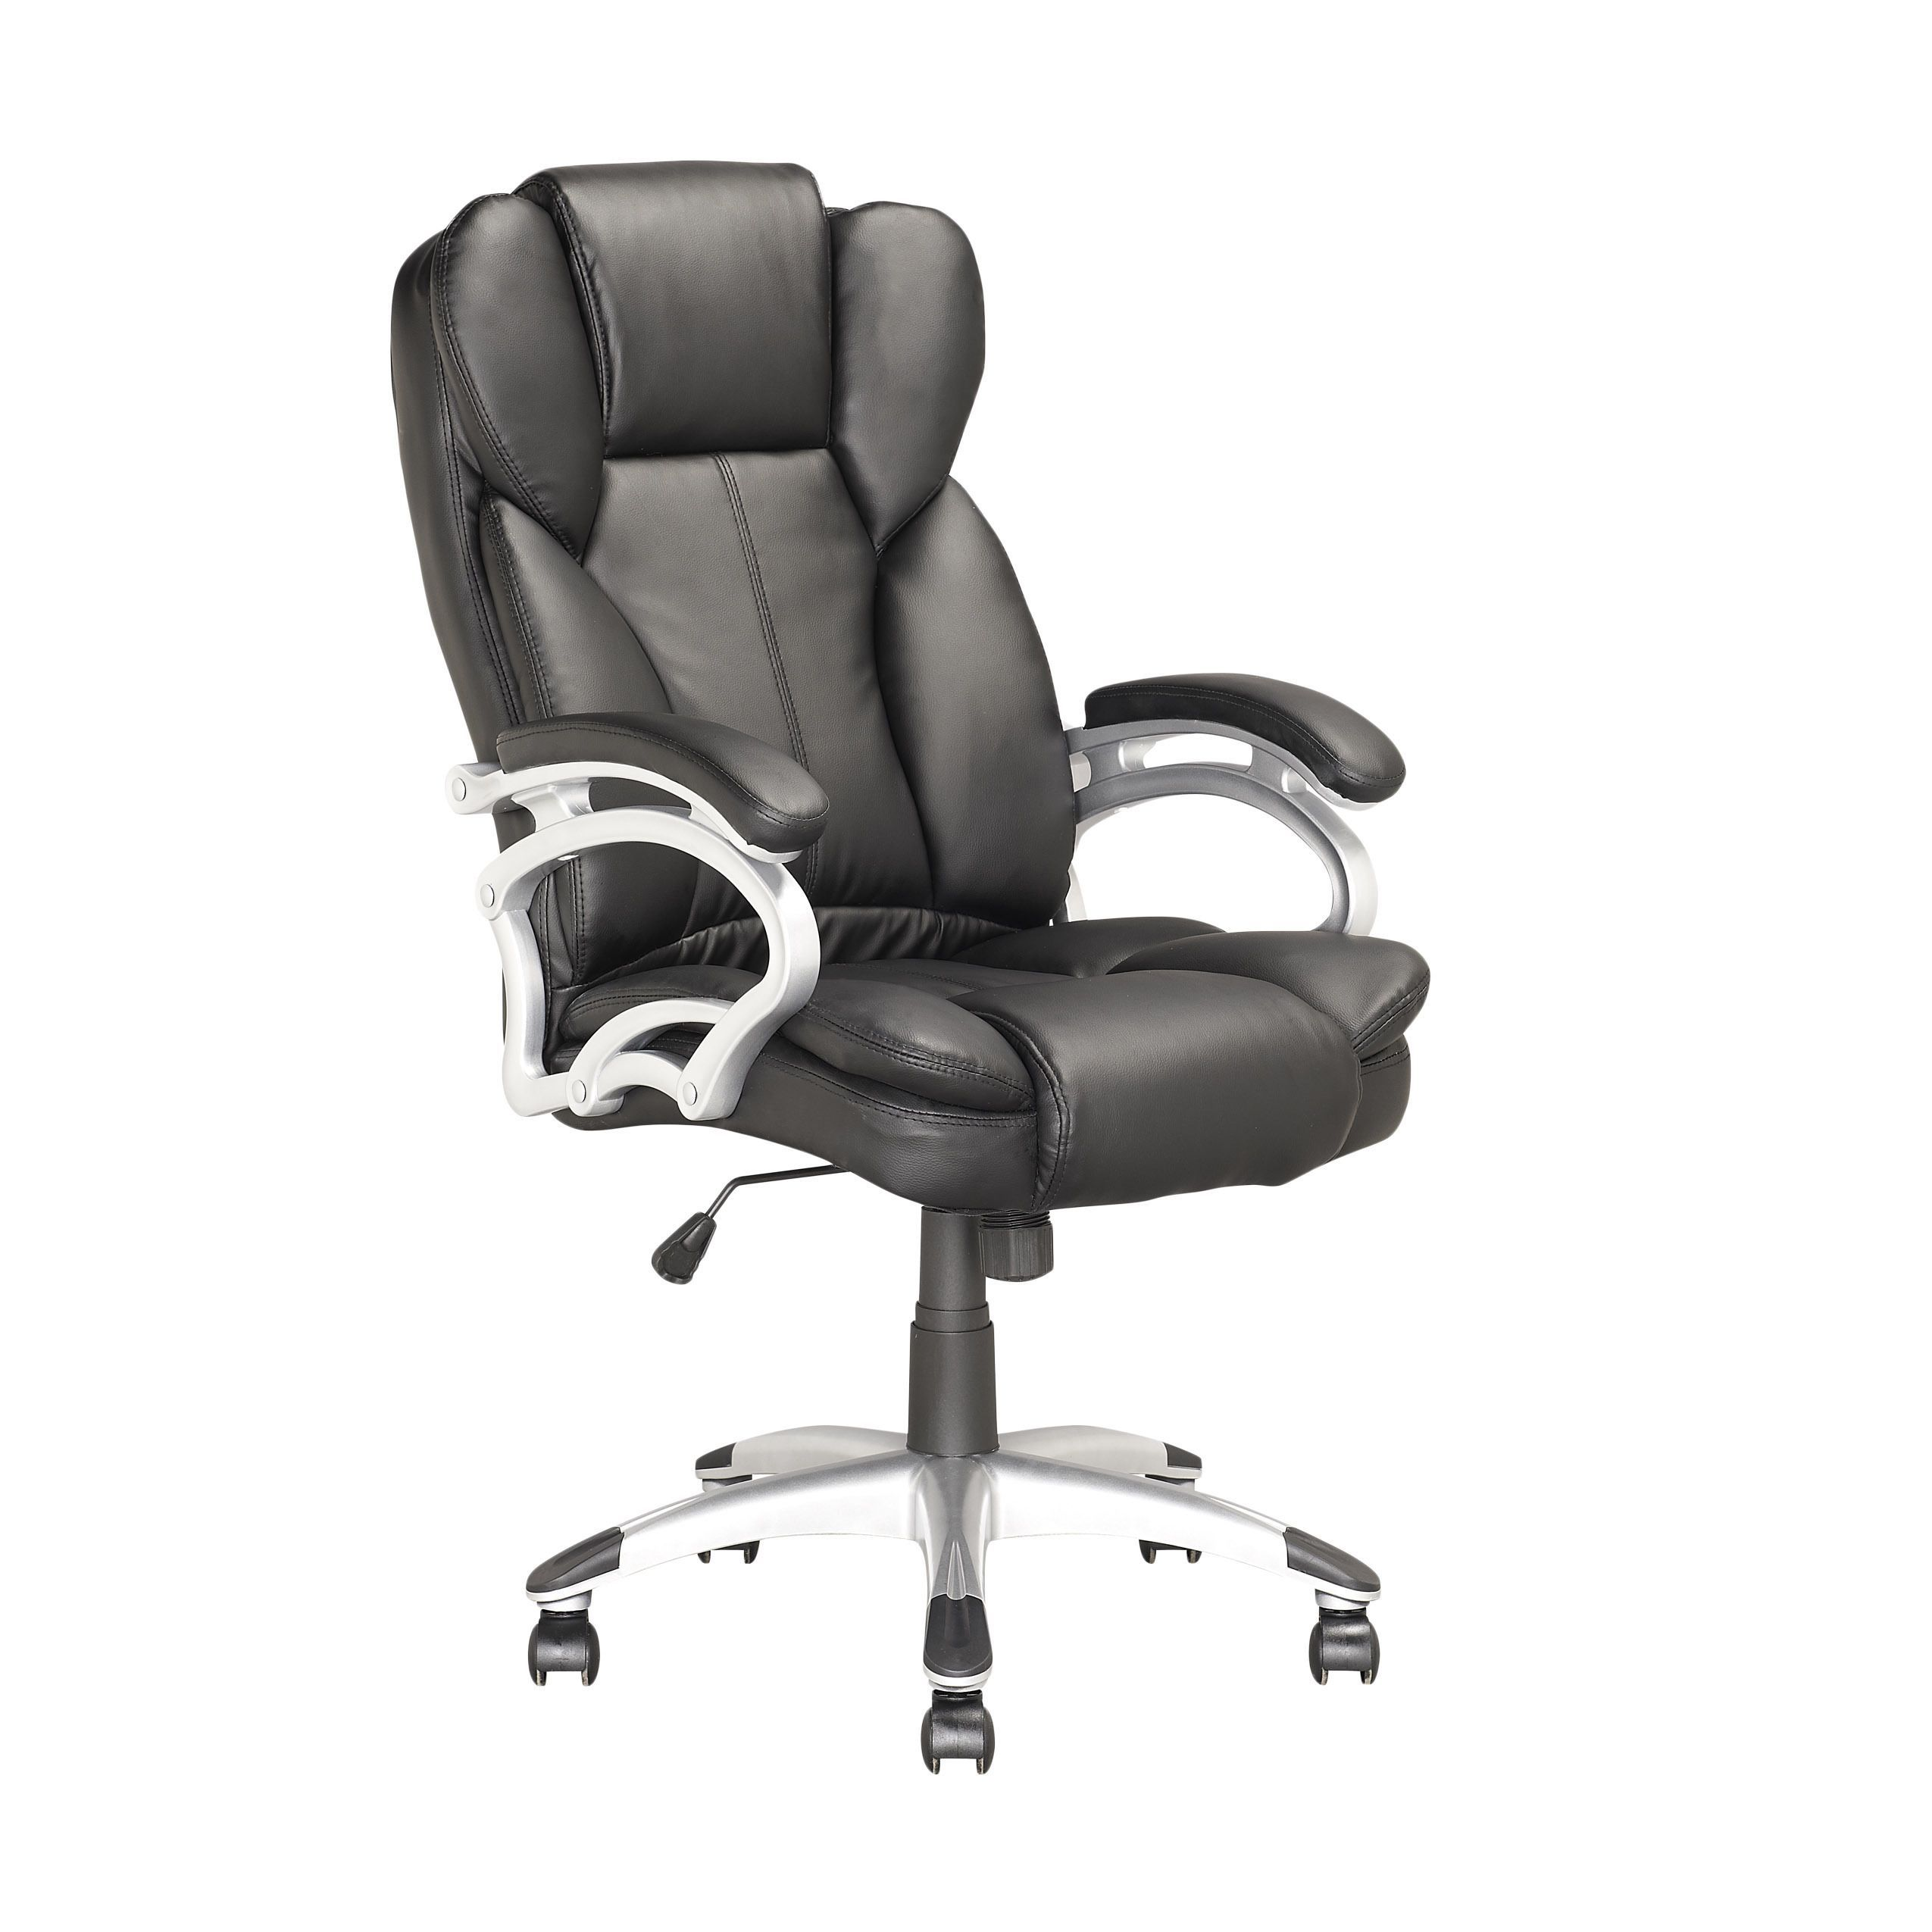 Corliving lofo executive office chair in black leatherette by